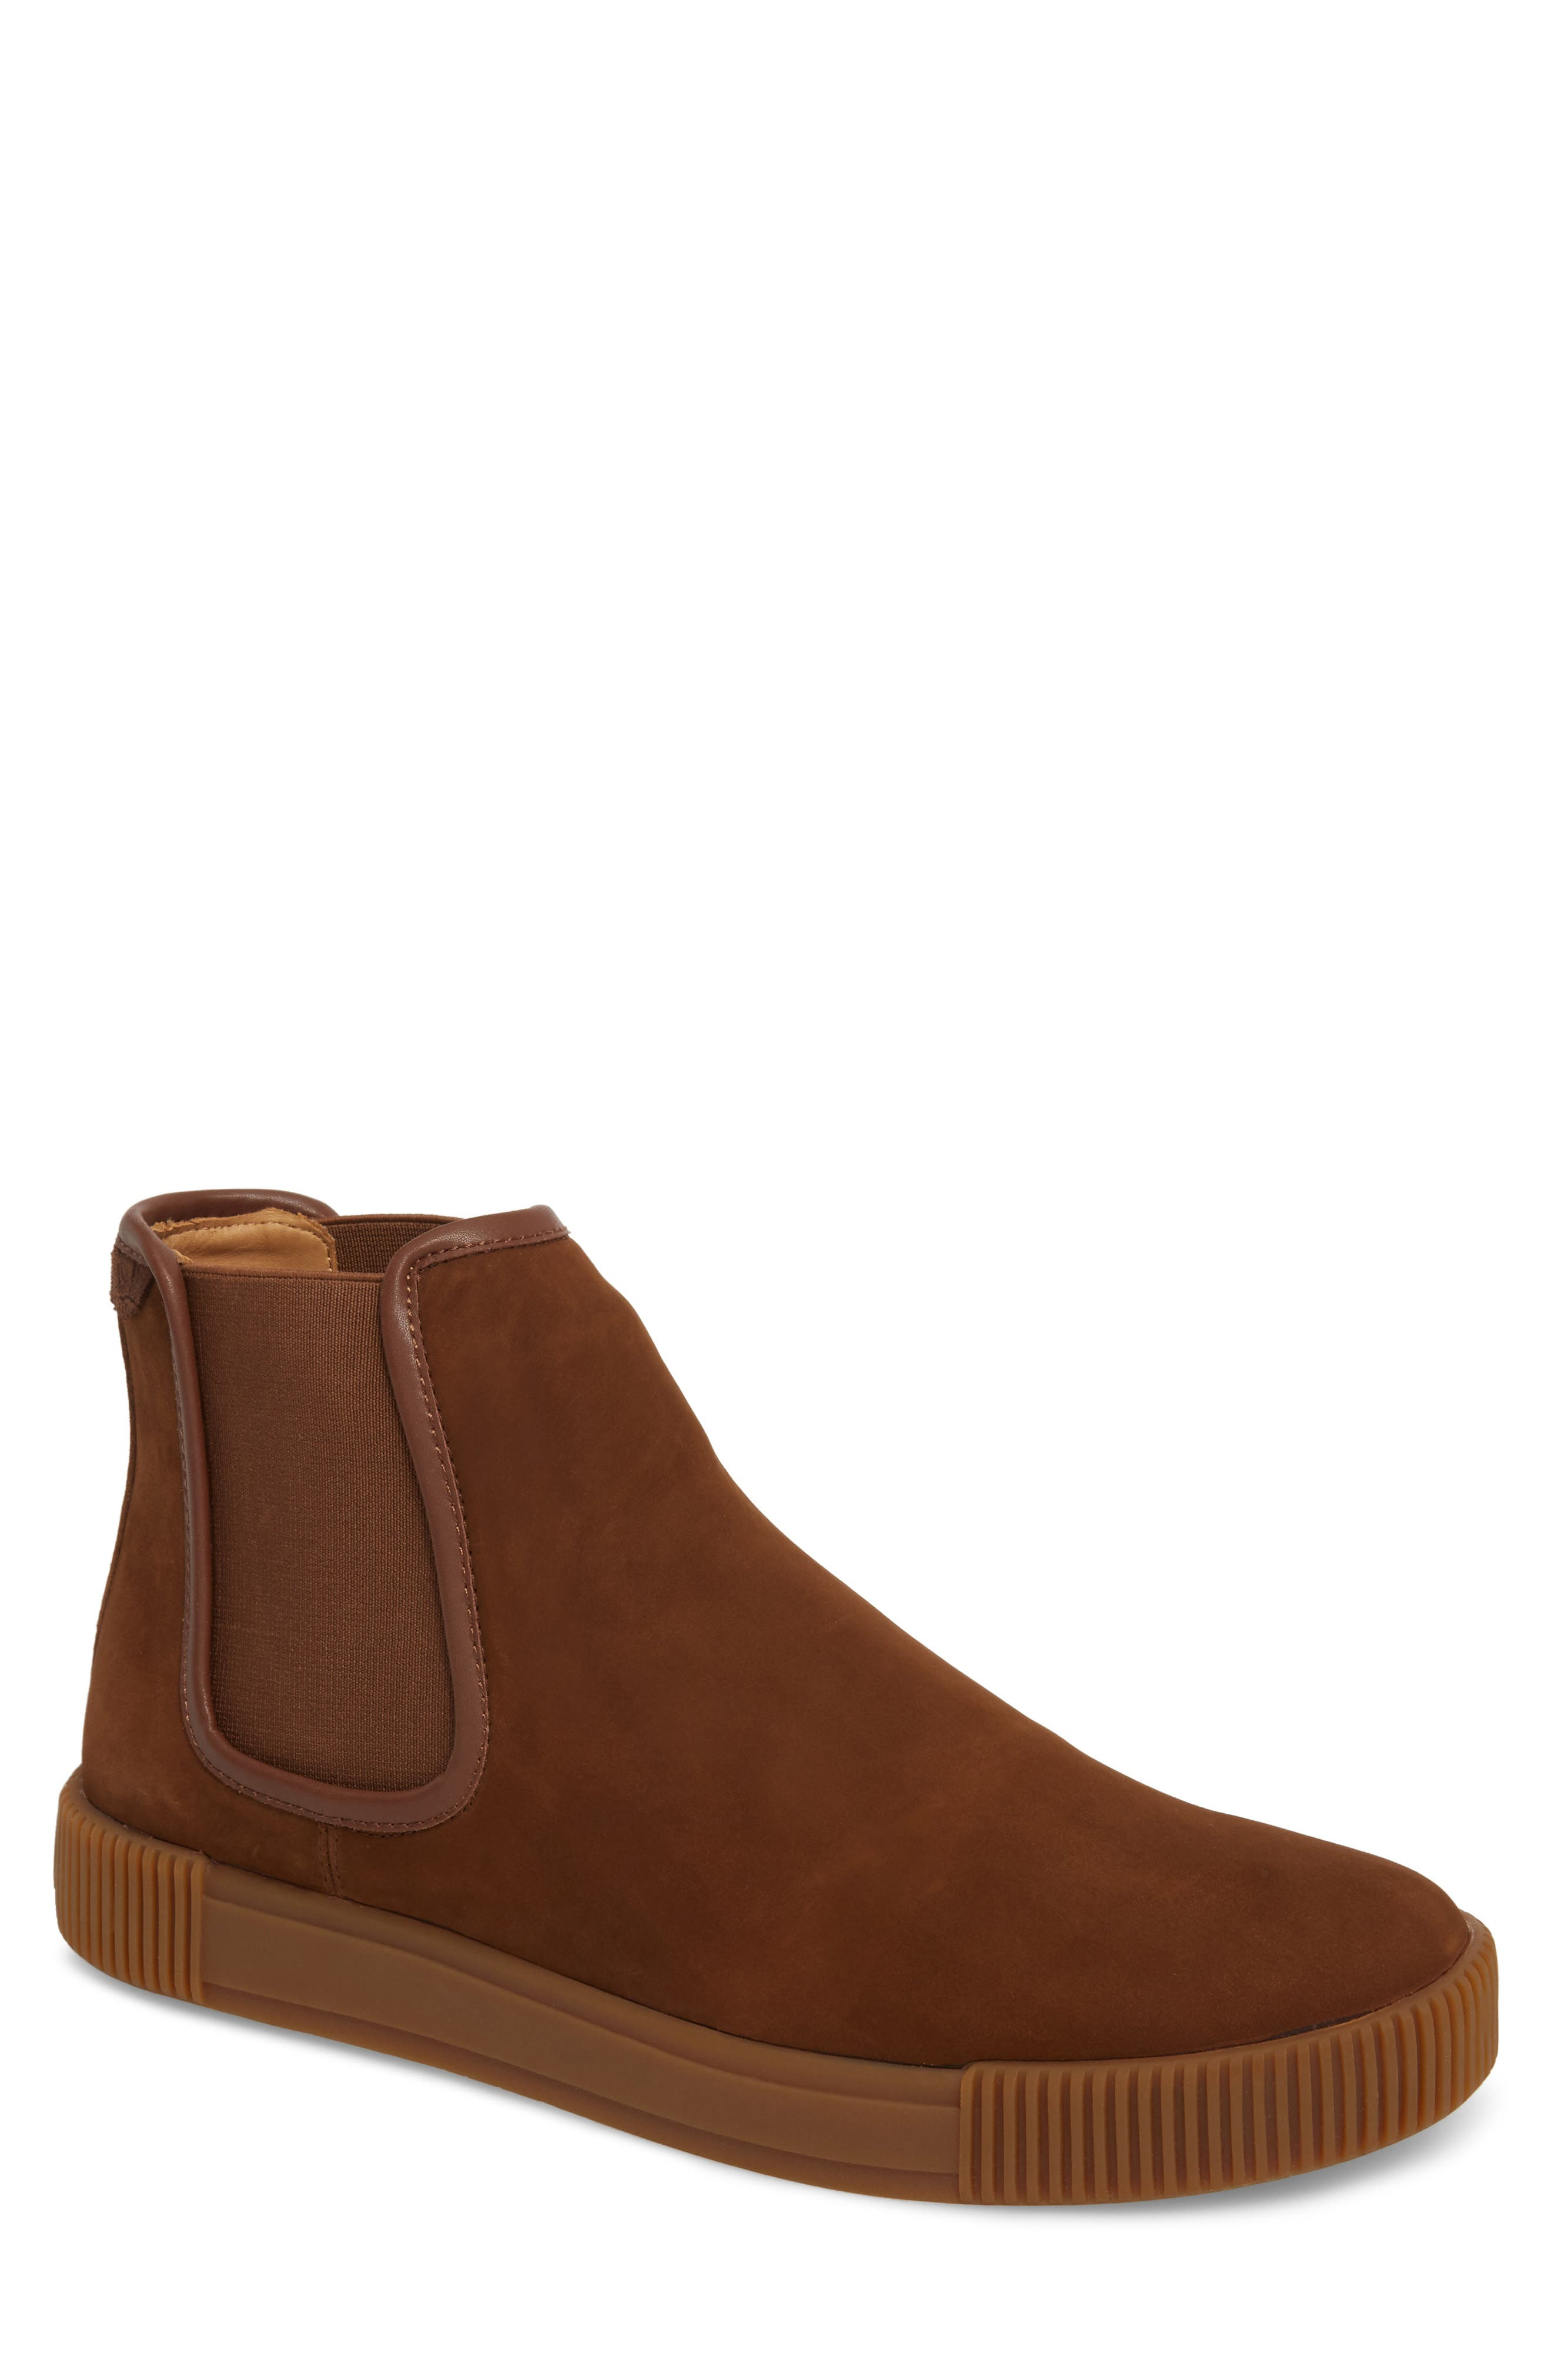 Lyons Chelsea Boot,                         Main,                         color, CHOCOLATE SUEDE